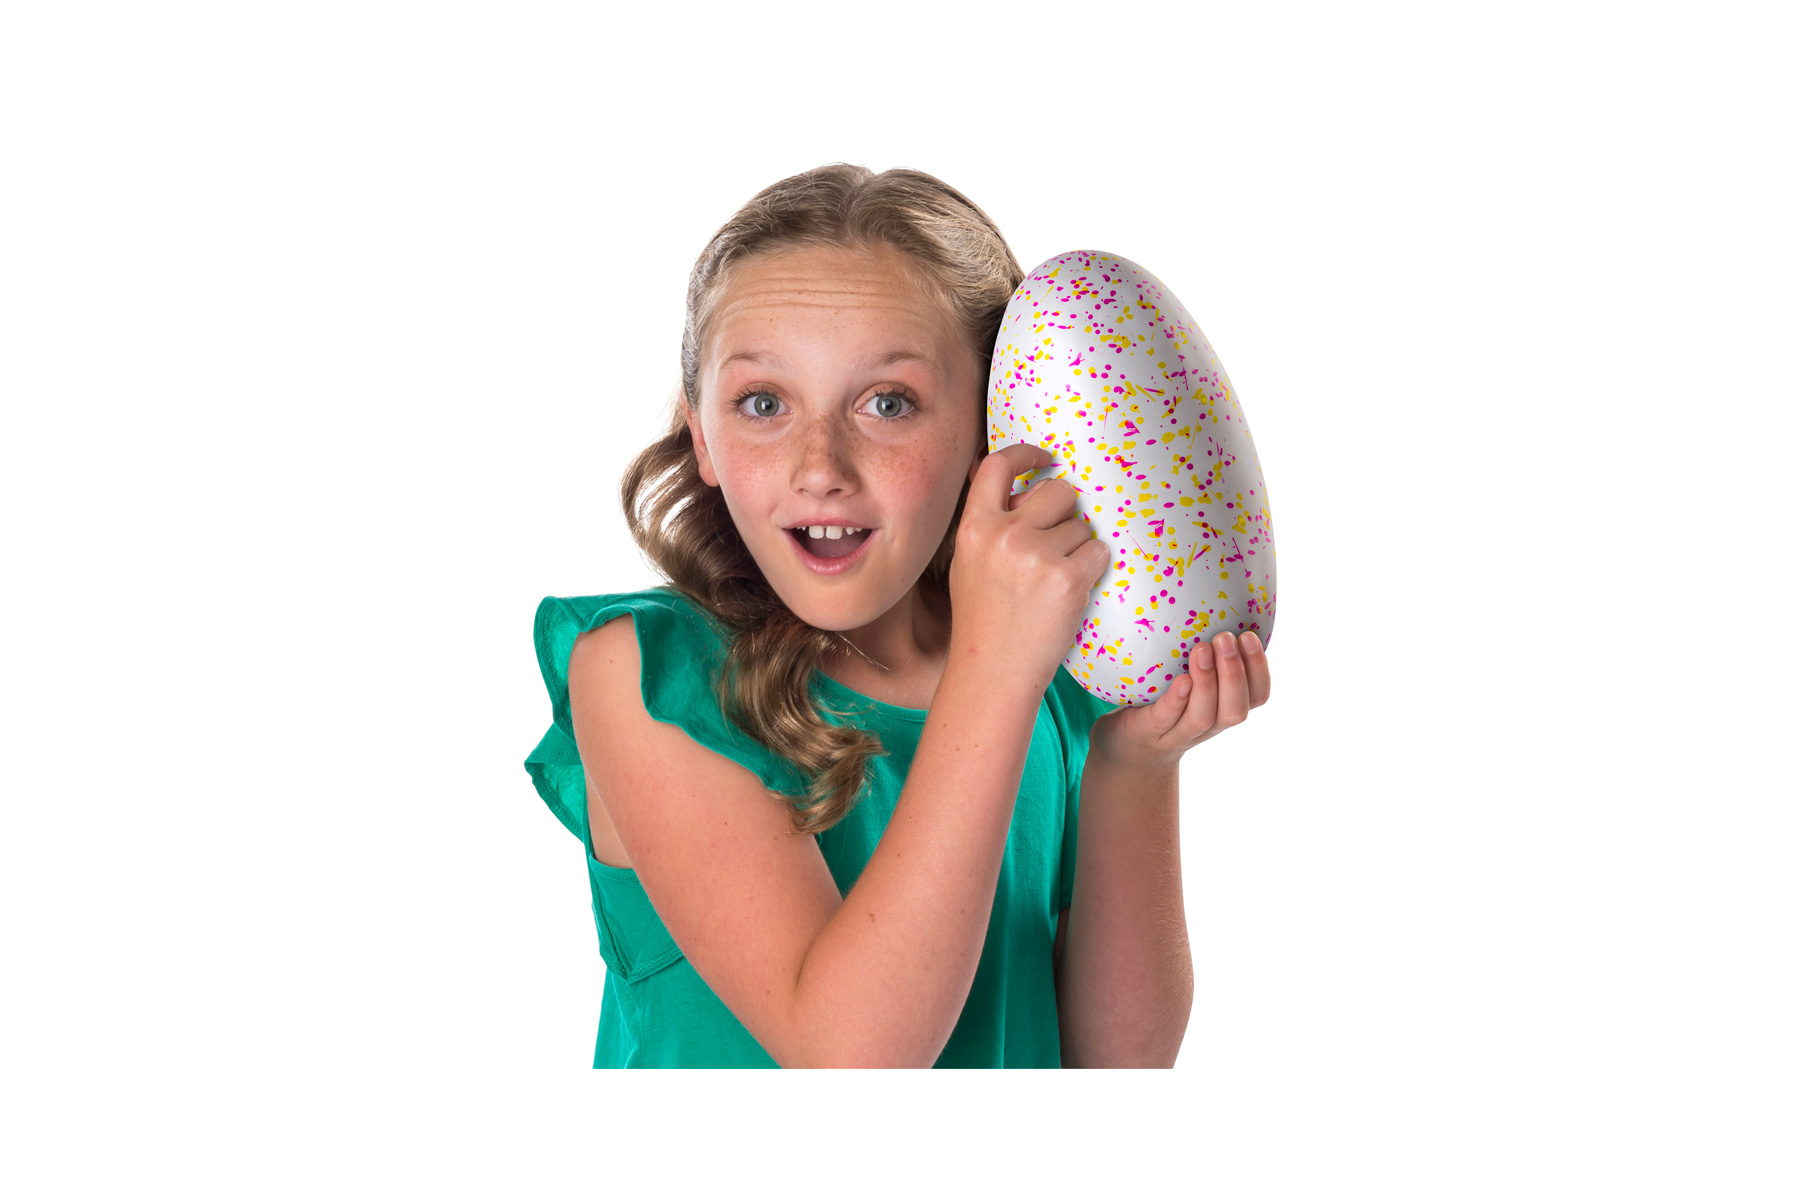 Girl holding Hatchimals egg